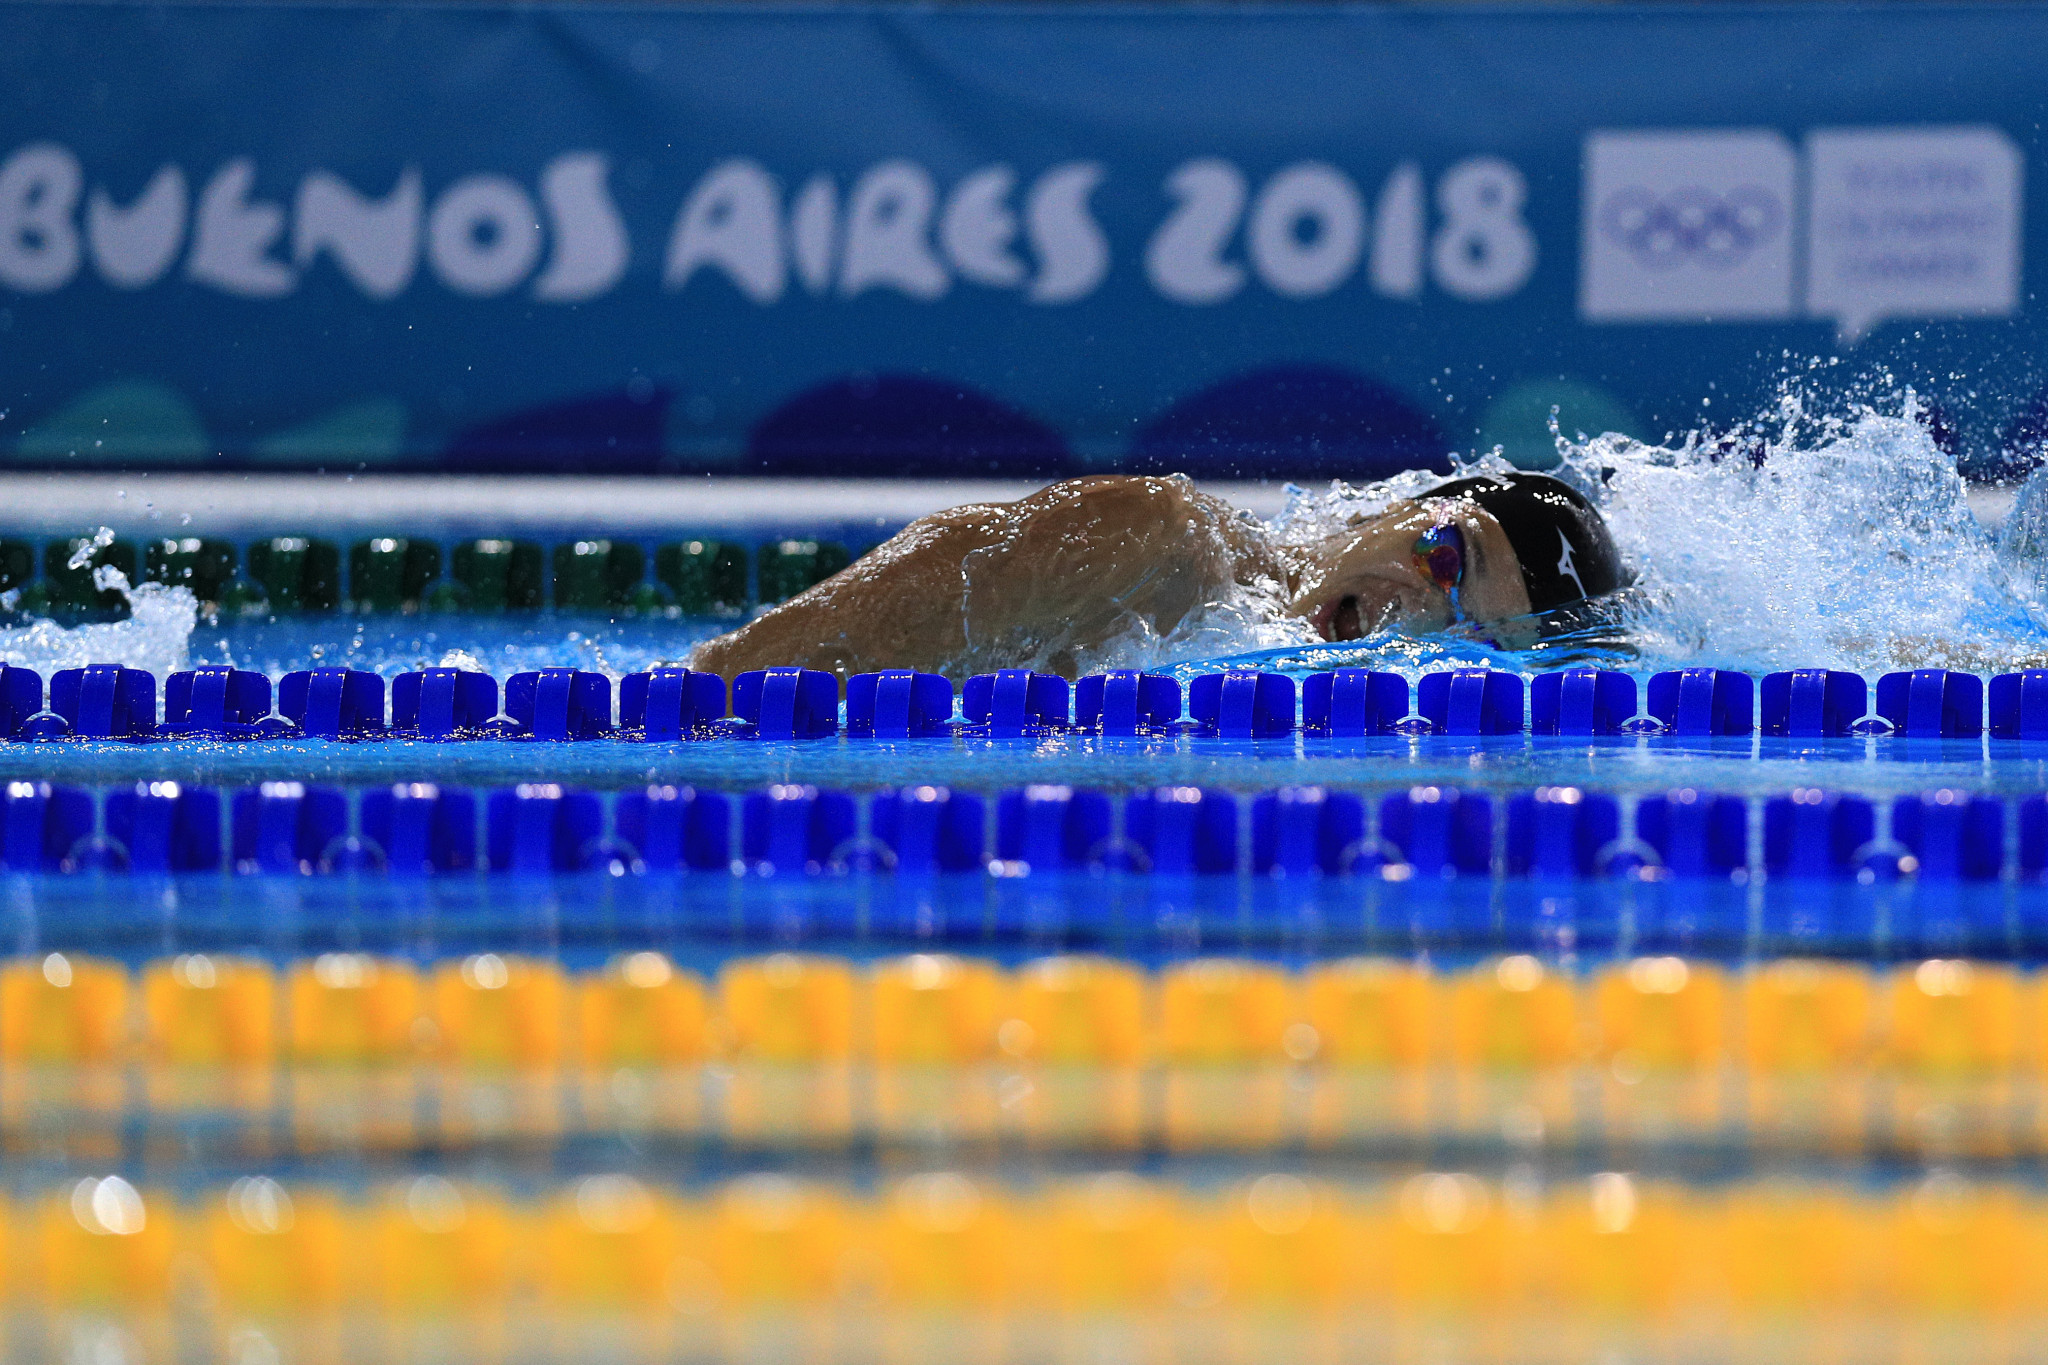 Buenos Aires 2018: Day five of competition